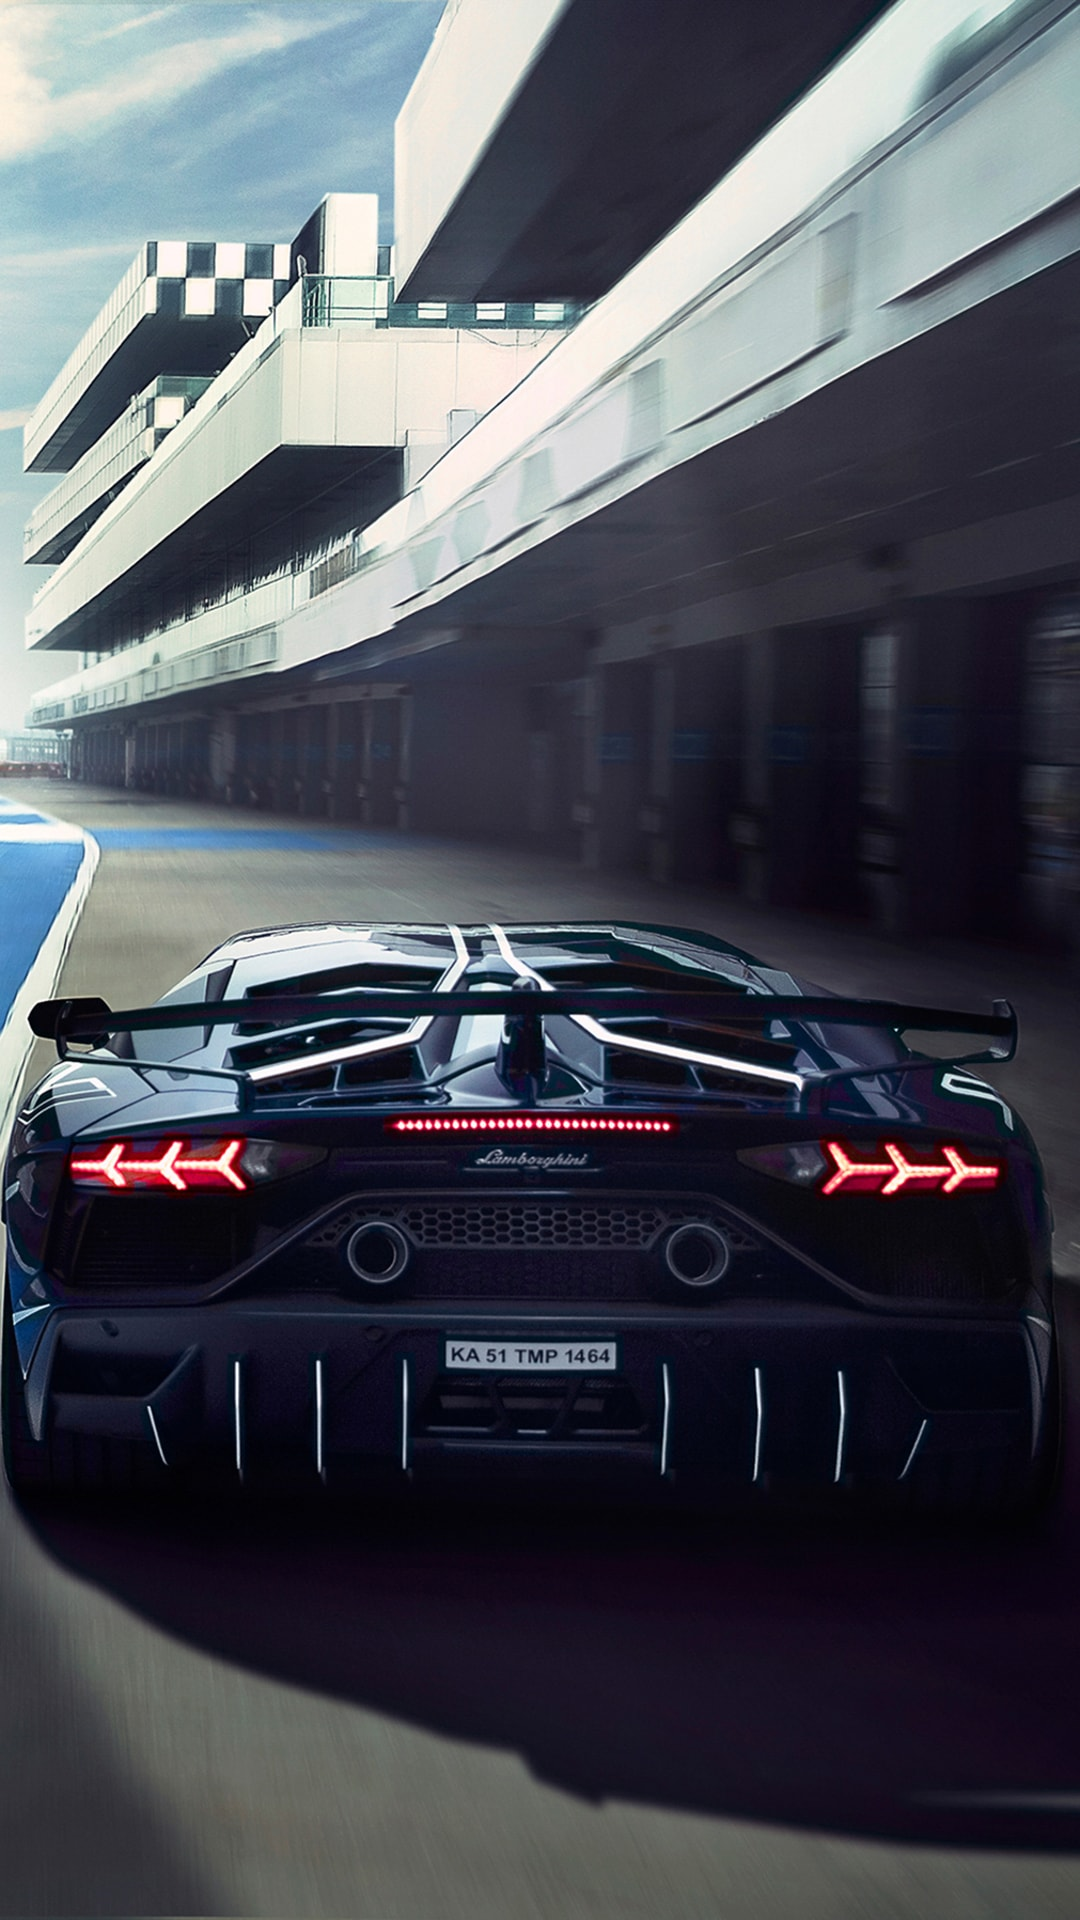 Lamborghini Aventador SVJ 4k , Best htc one wallpapers, free